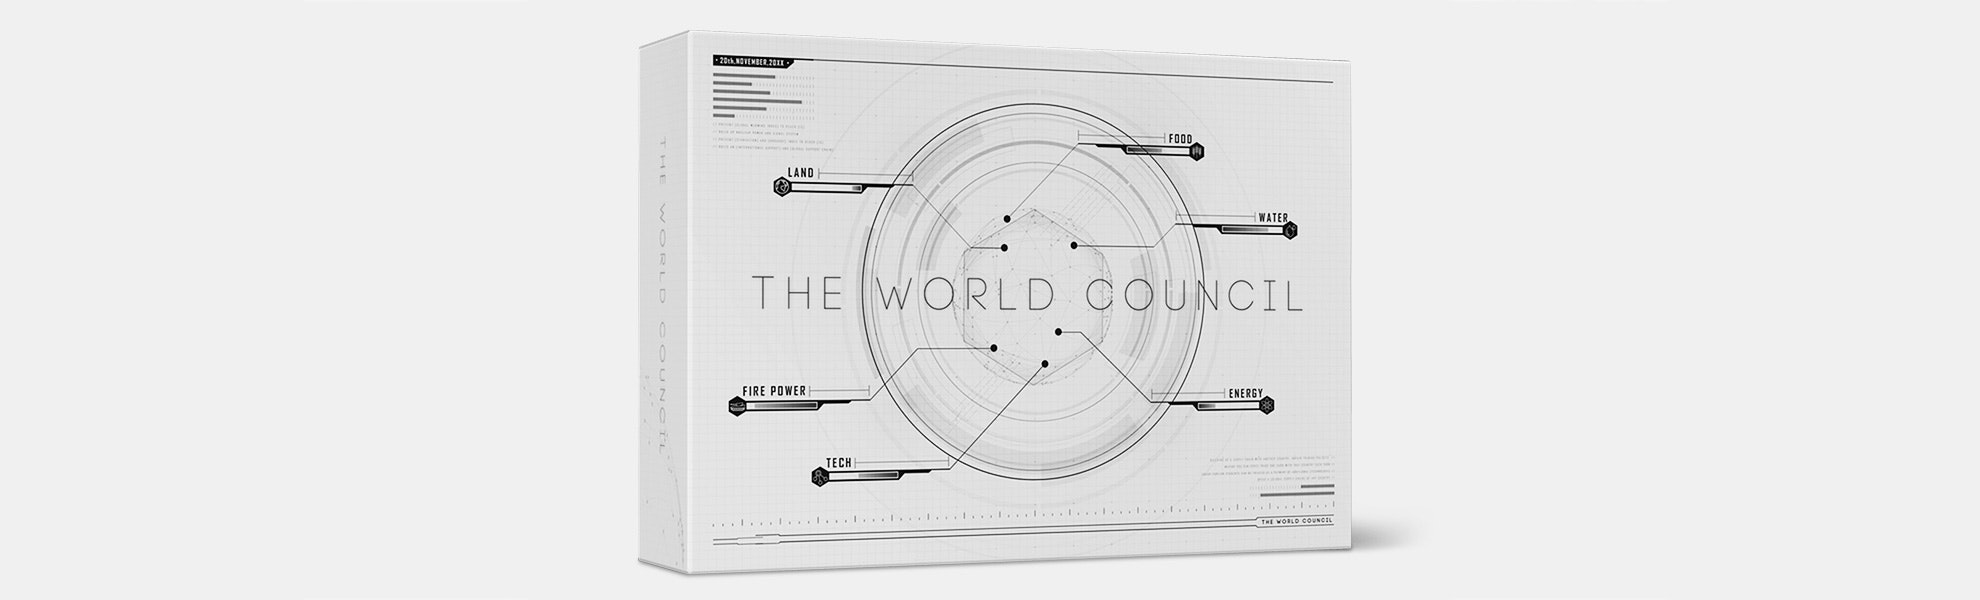 The World Council - Dictator Edition